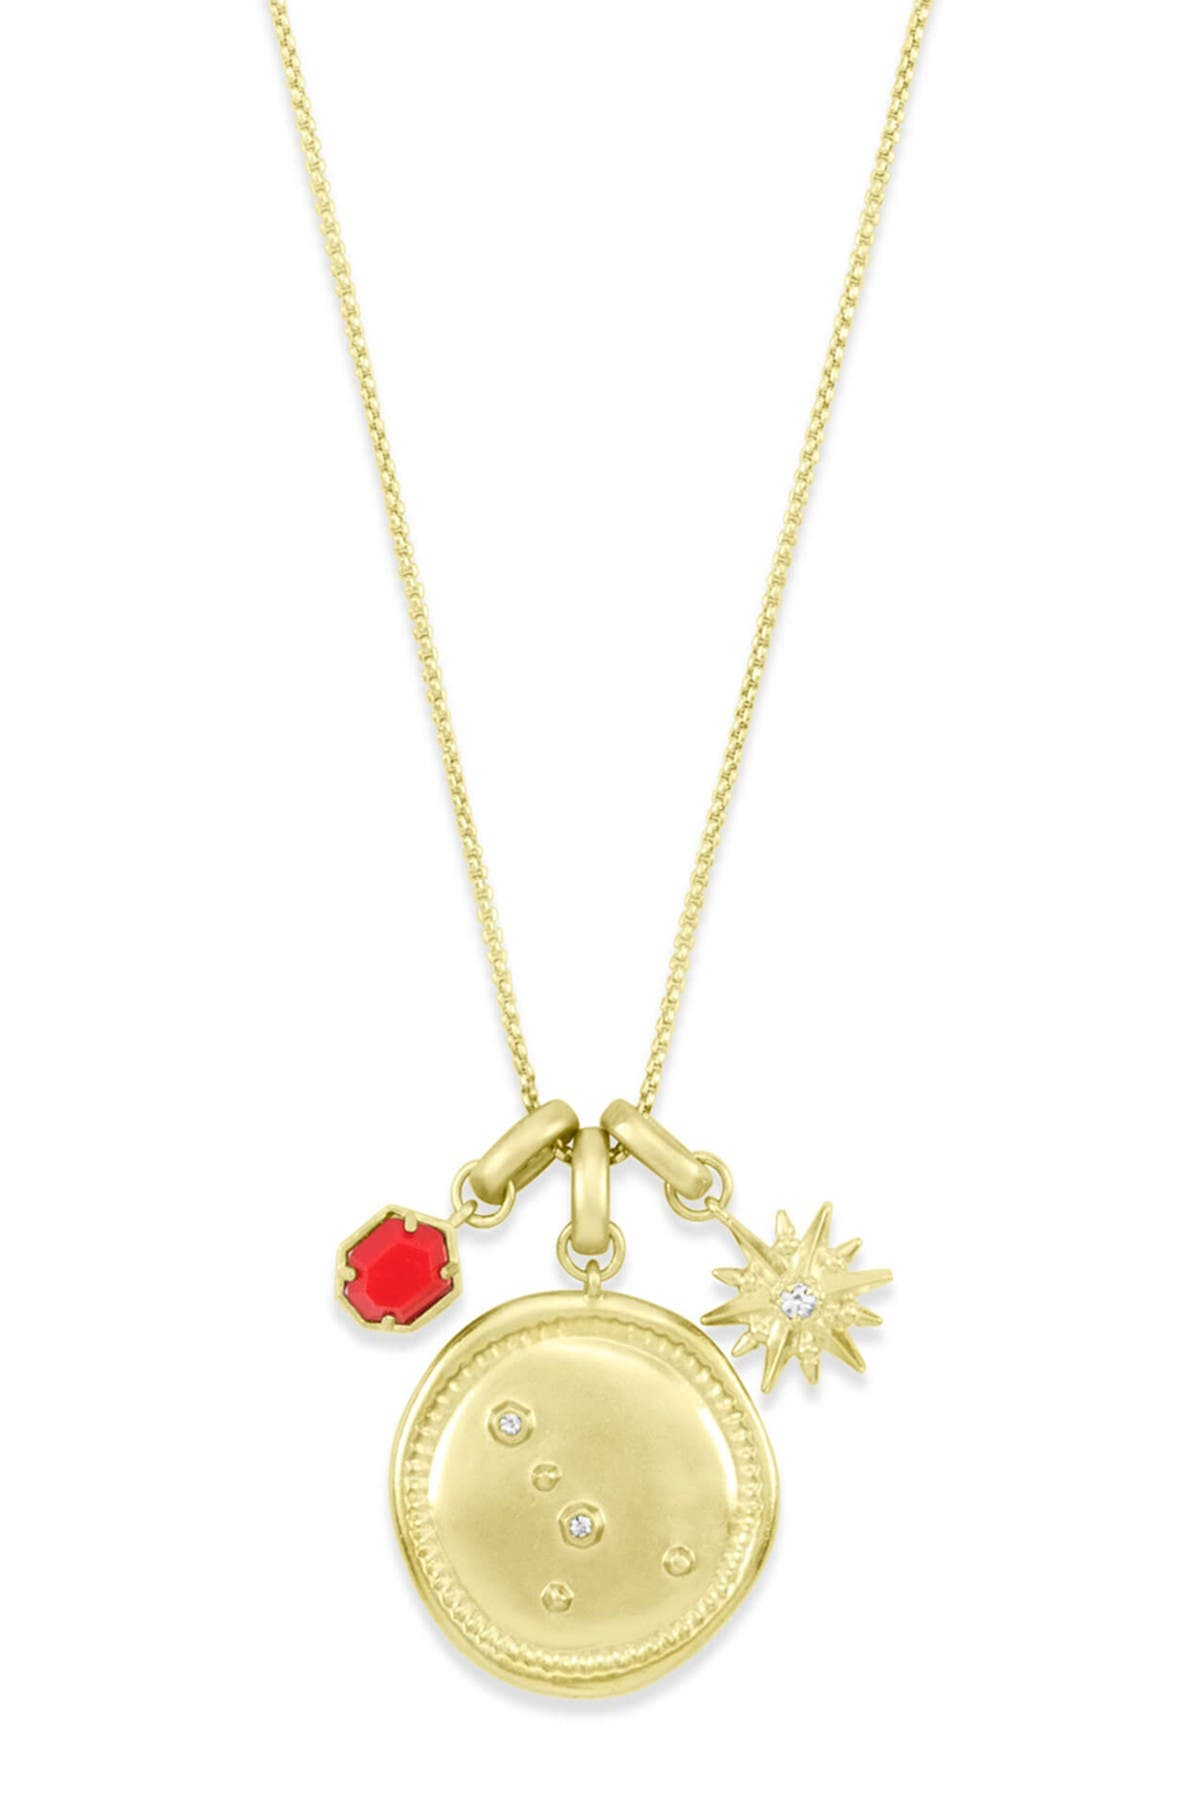 Image of Kendra Scott 14K Gold Plated Cancer Charm Necklace